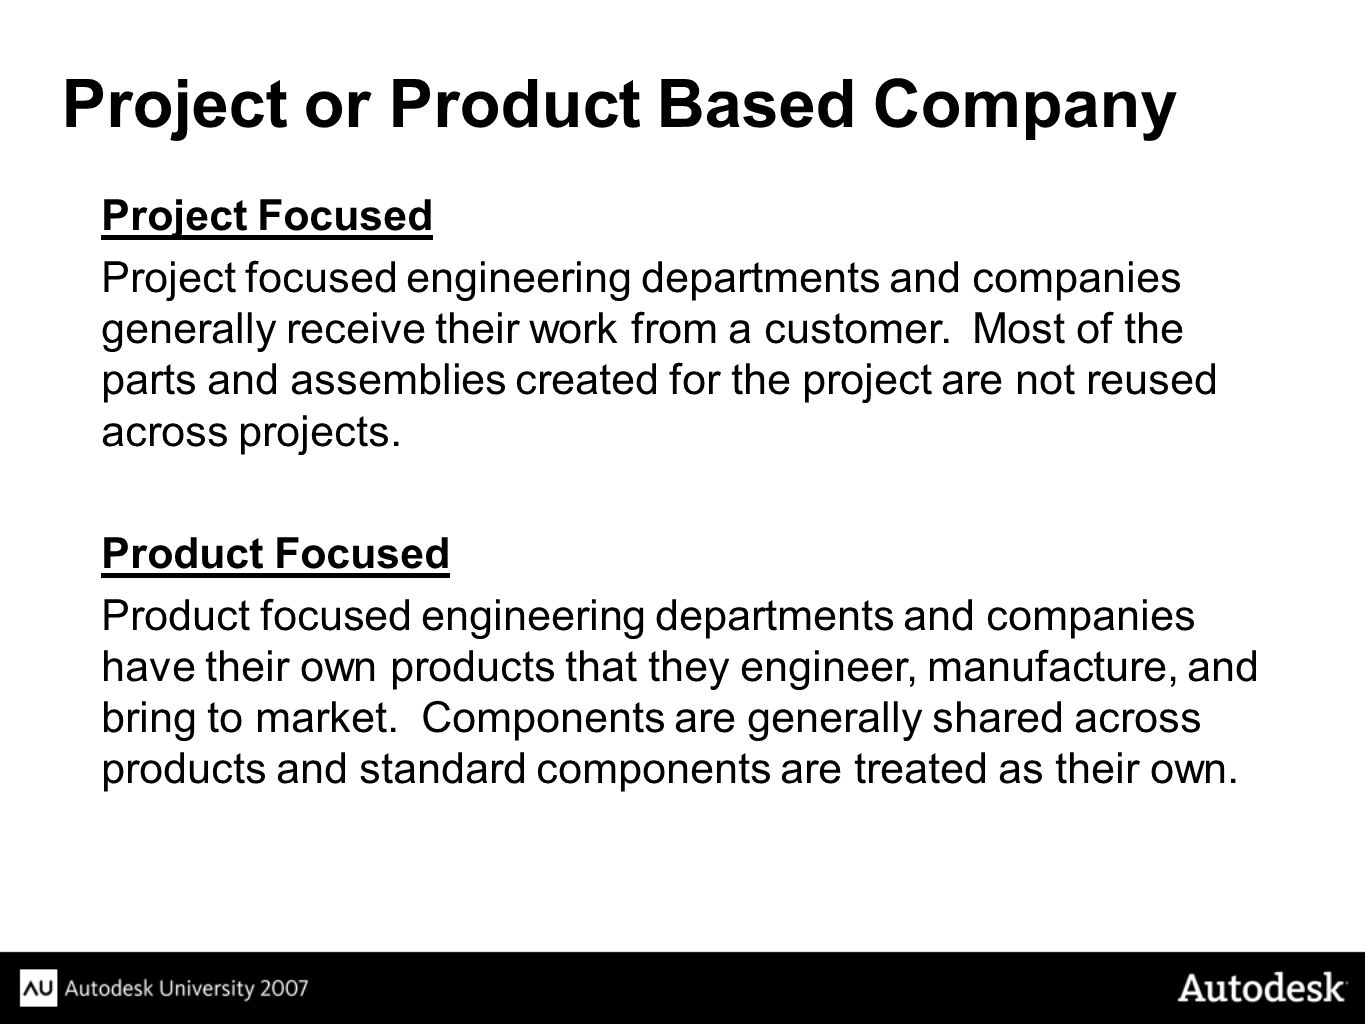 Project or Product Based Company